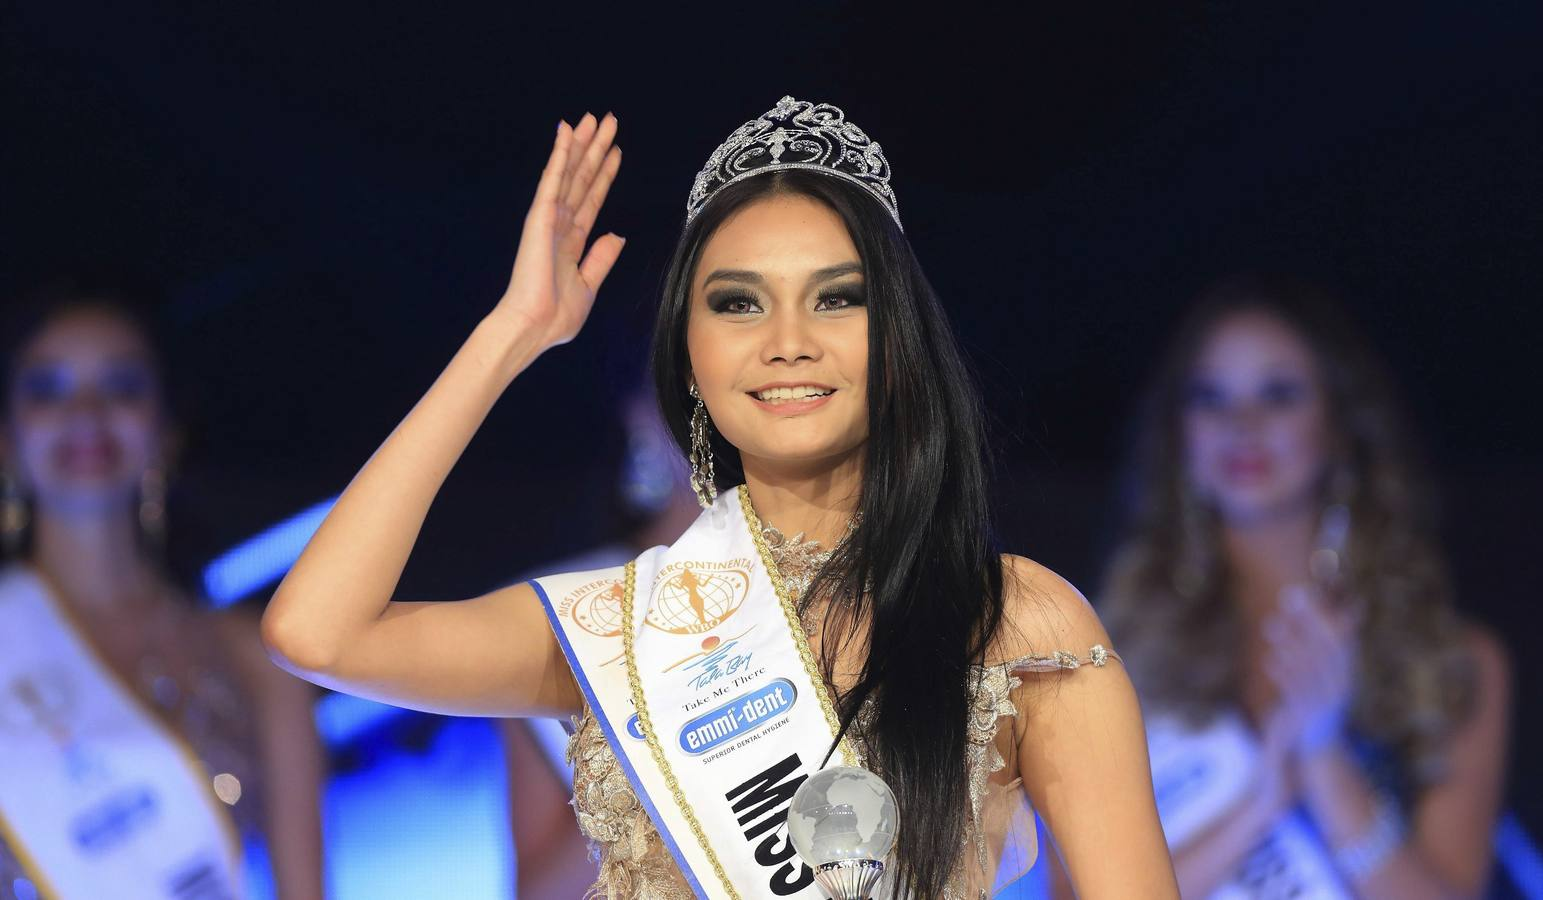 La belleza tailandesa triunfa en Miss Intercontinental